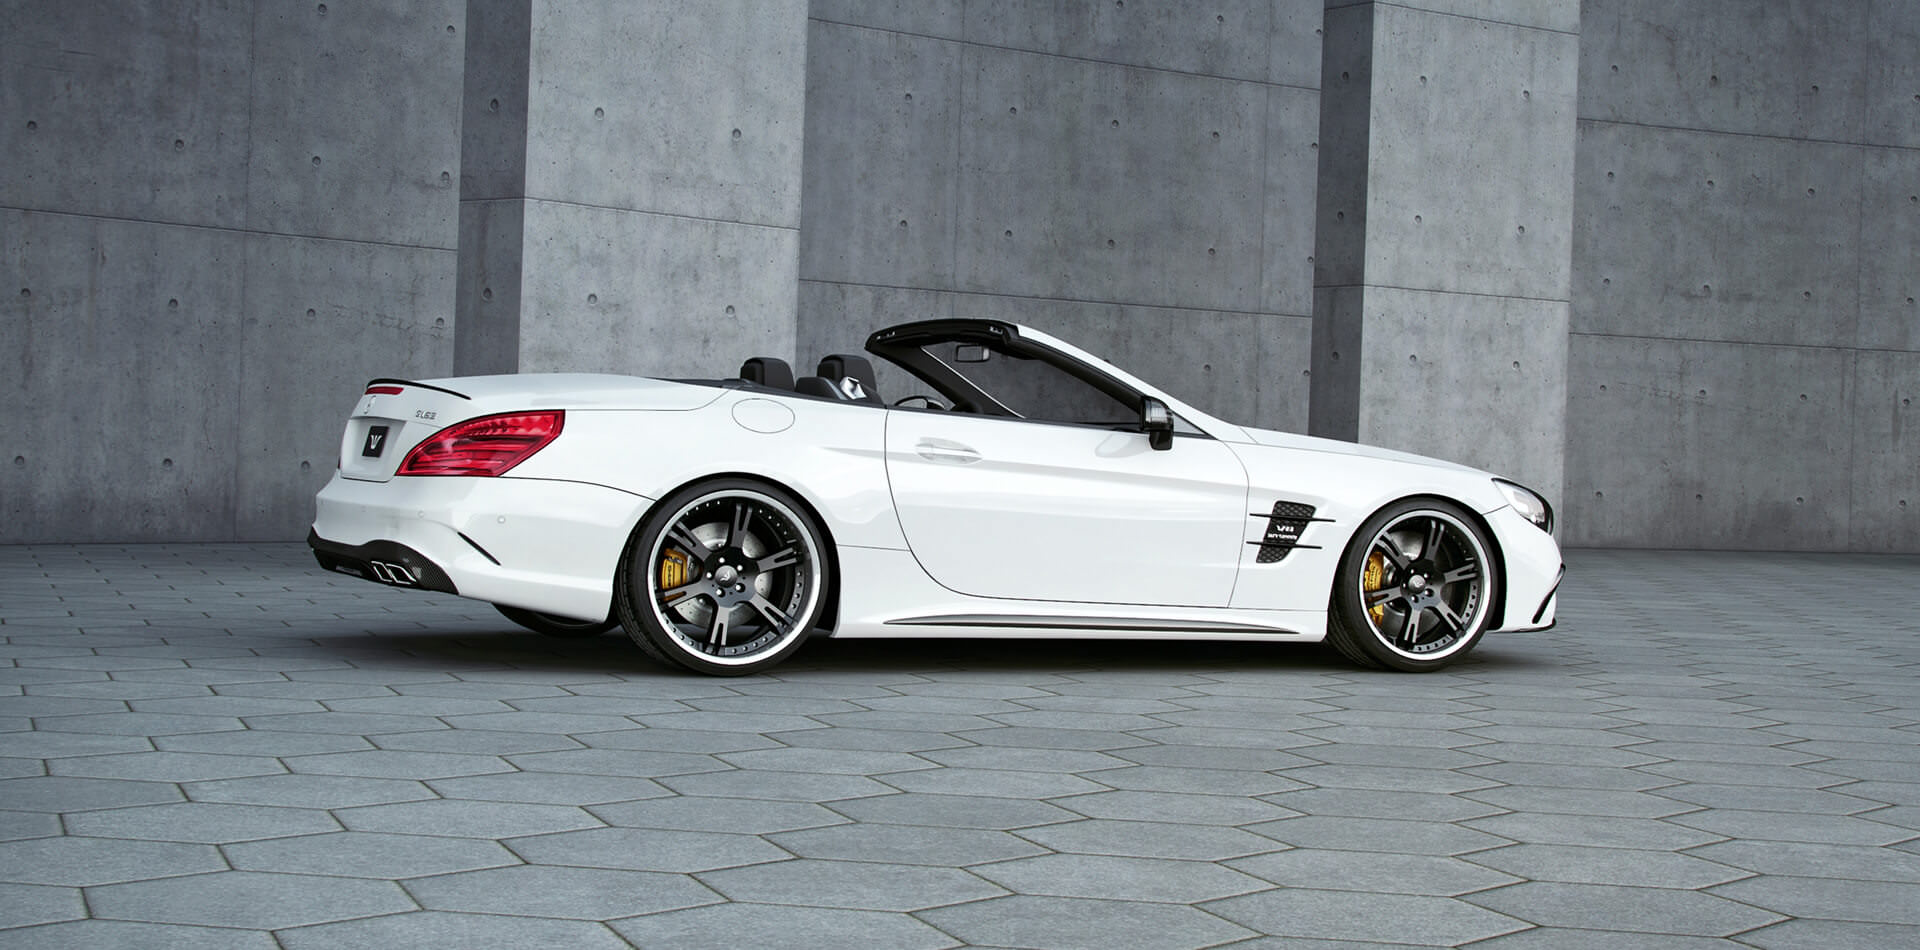 Tuning_SL63AMG_792PS-1